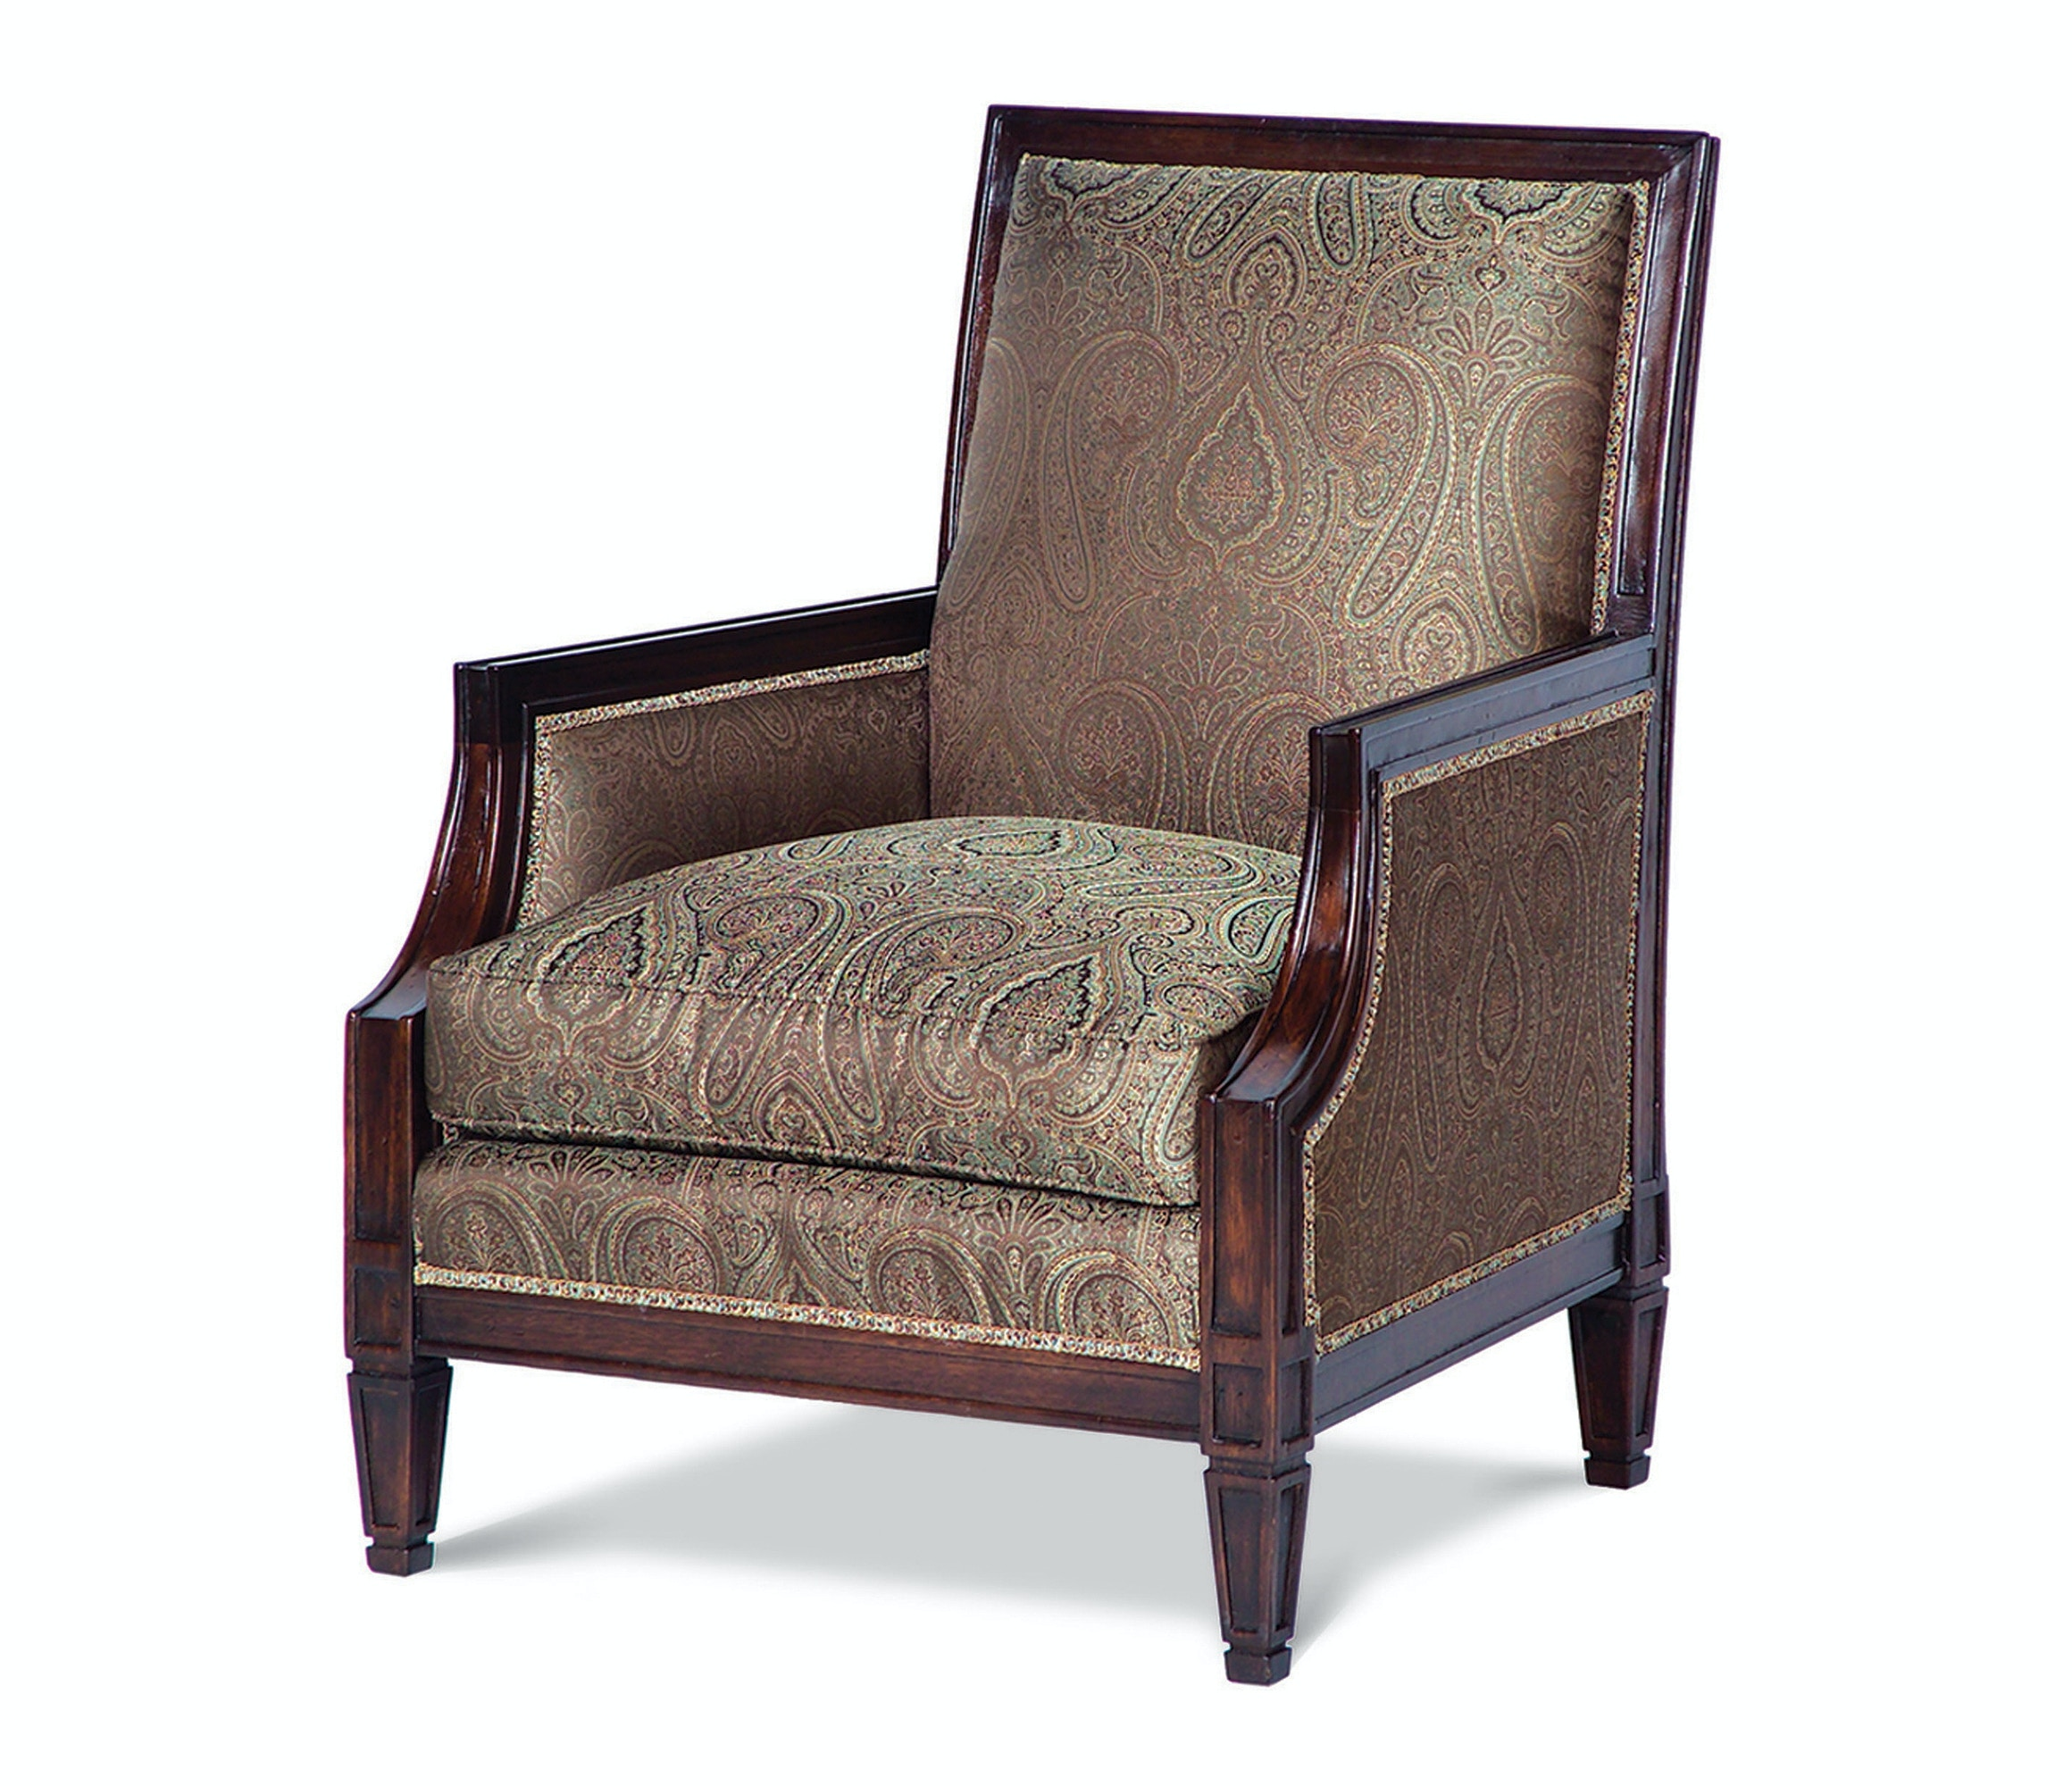 Taylor King Furniture Alliance Chair 106 01